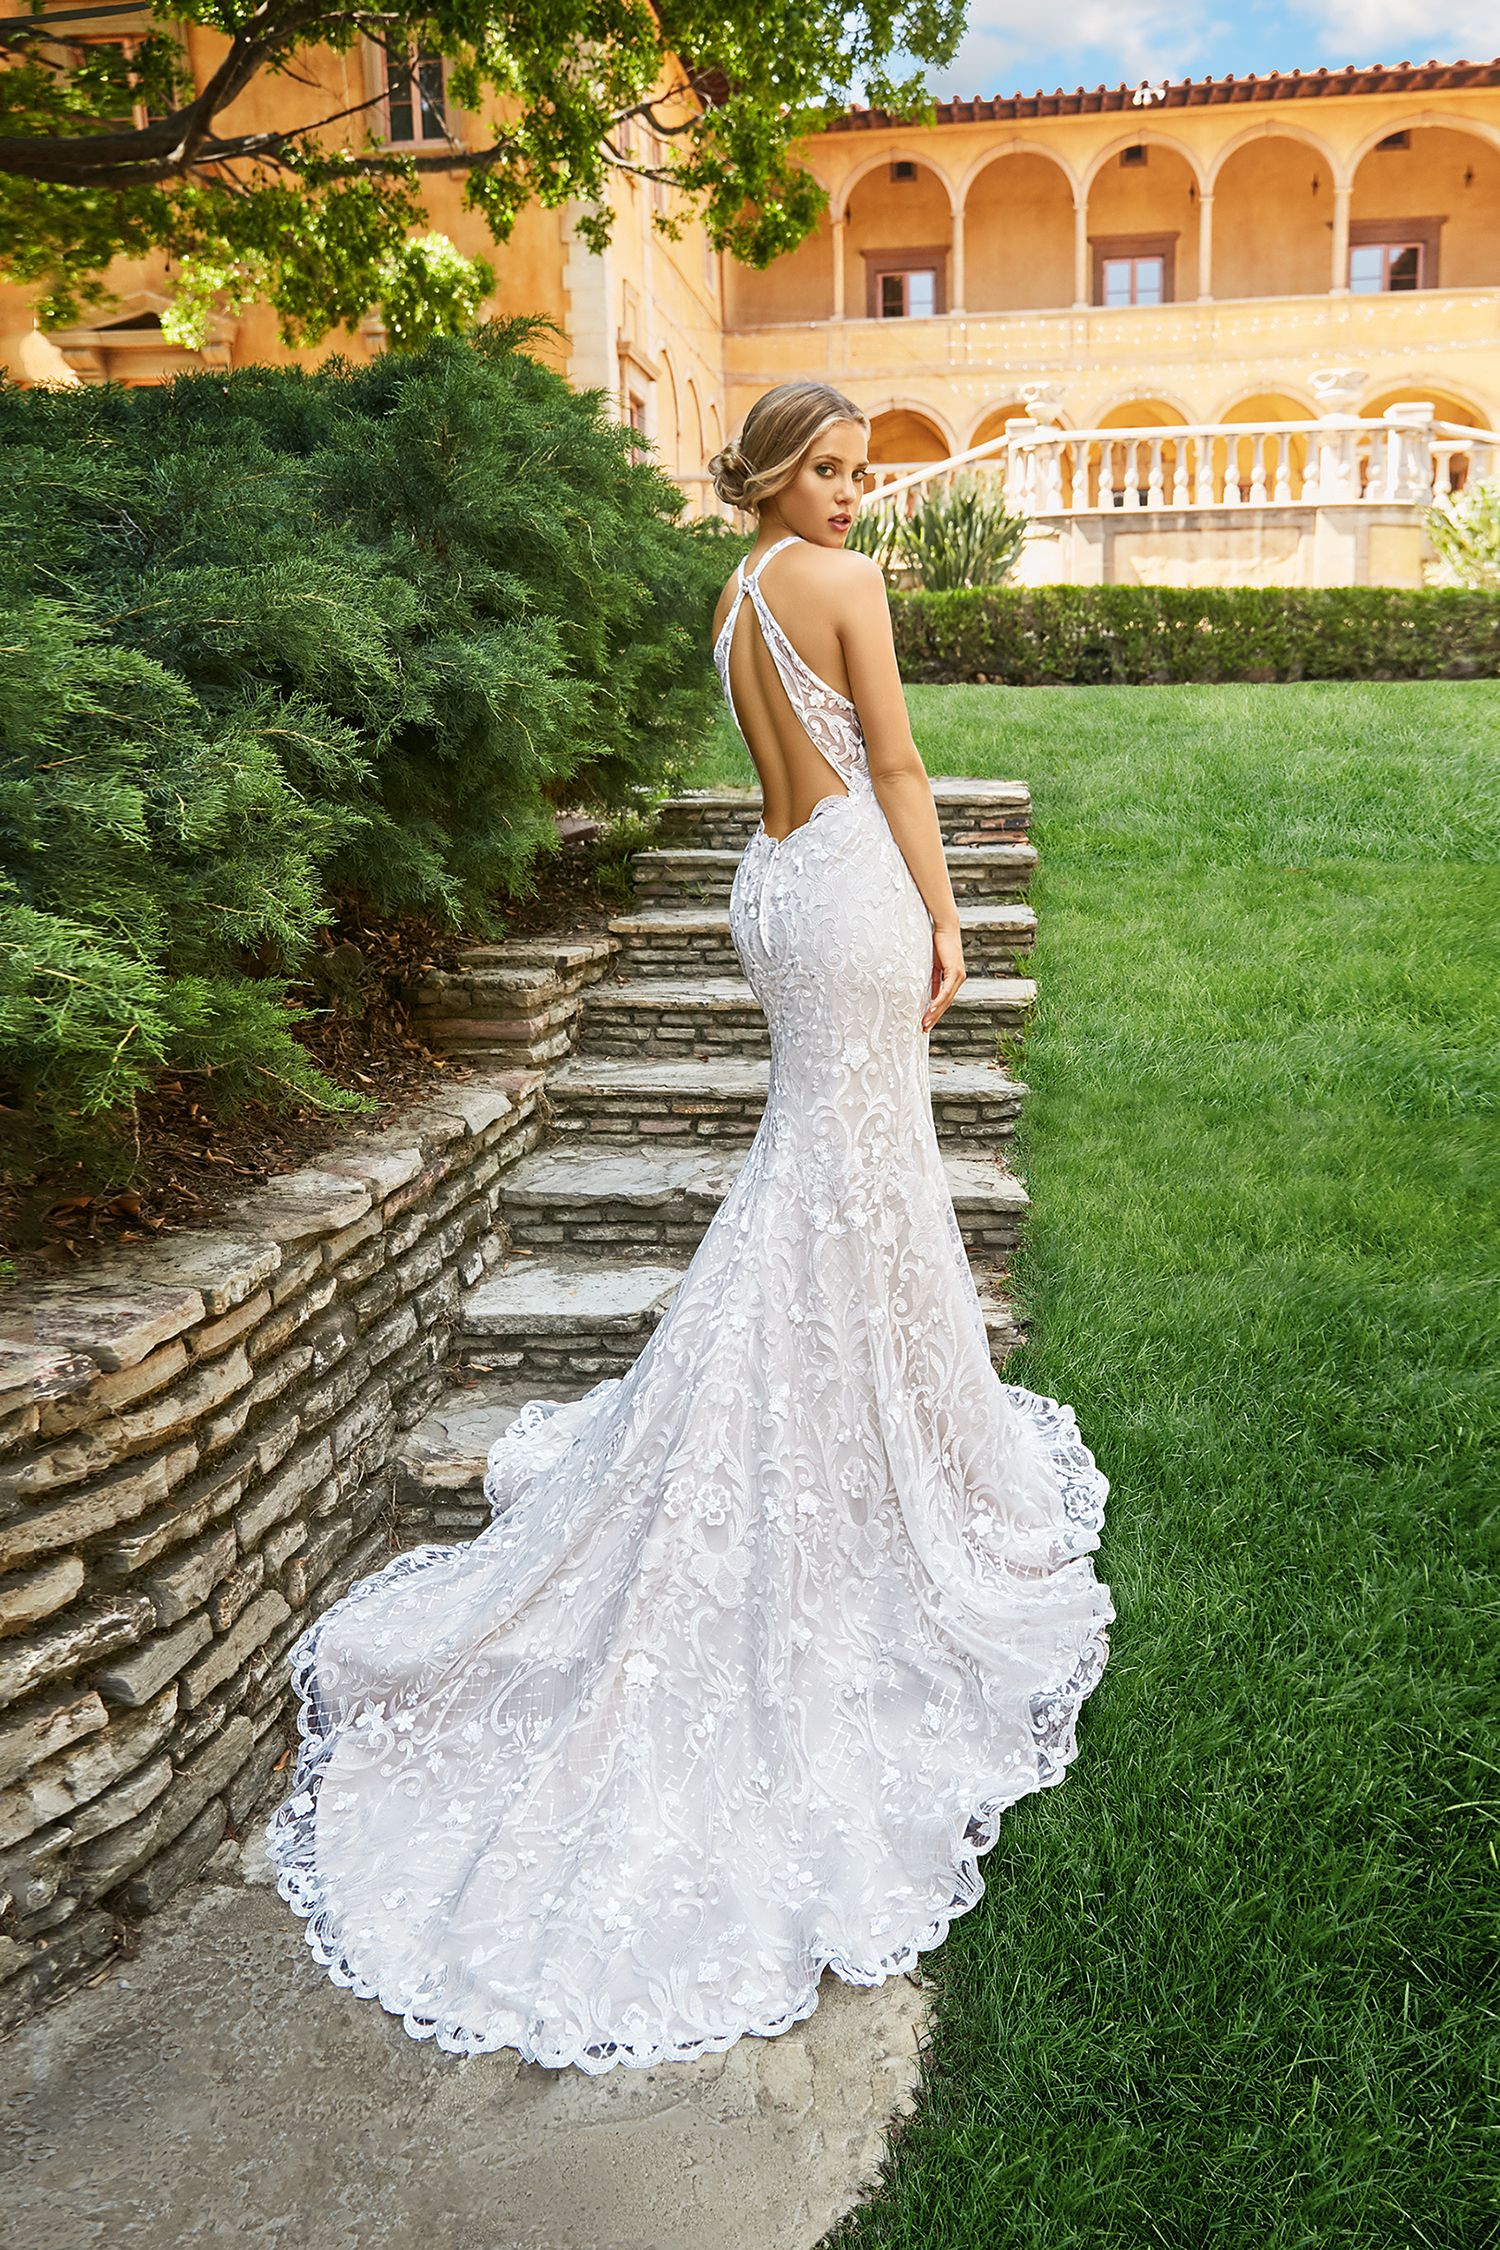 How To Choose A Wedding Gown That Is Right For Your Venue Wedding Dress Couture Wedding Dress Backs Moonlight Bridal [ 2250 x 1500 Pixel ]